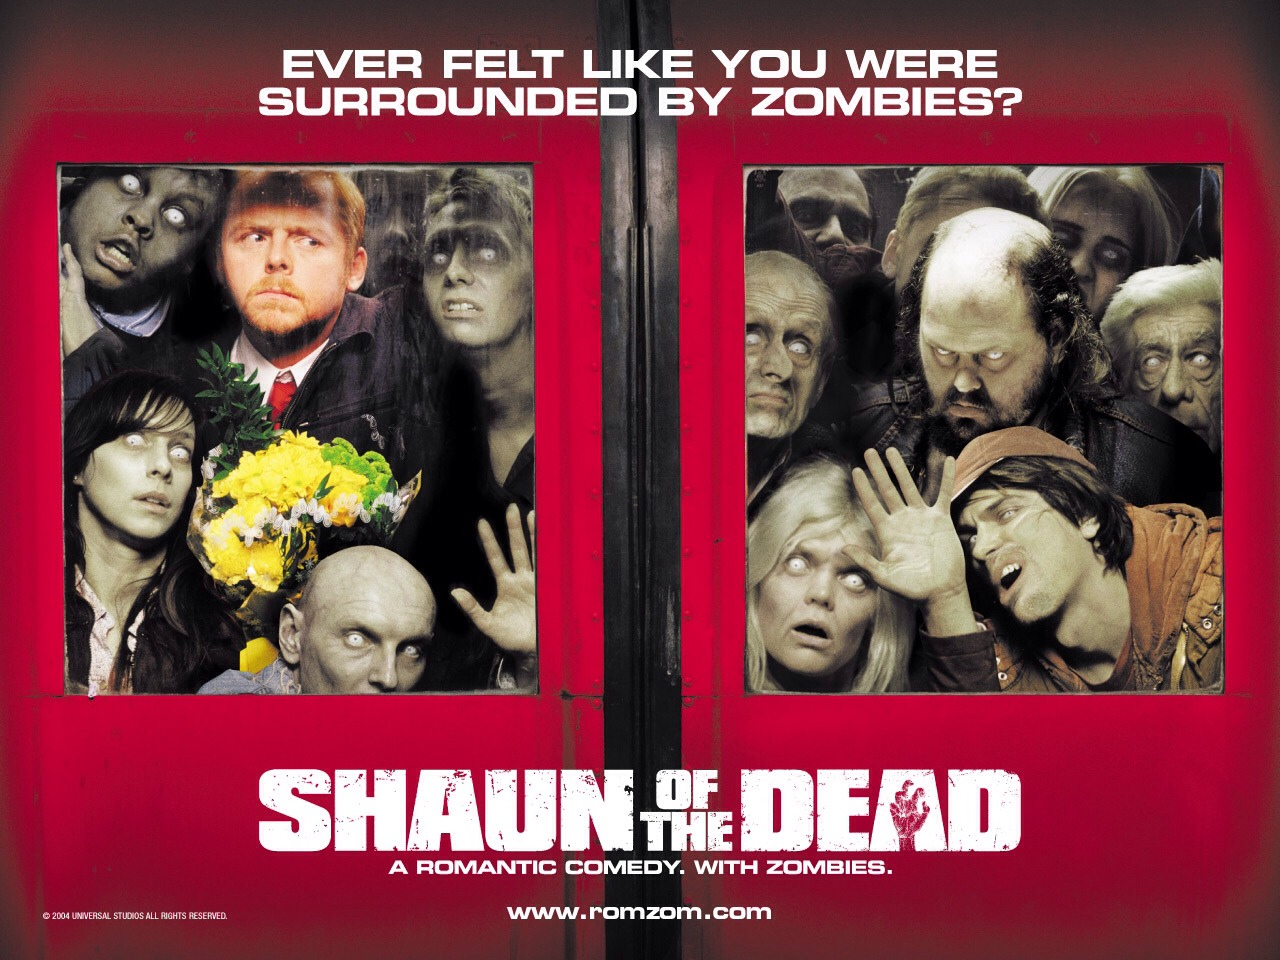 Shaun of the Dead, 2004 zombie comedy film. Had me in Tears I was laughing so hard 😂😂😝starring Nick Frost, Simon Pegg, Kate Ashfield, Martin Freeman, Lucy Davis and Dylan Moran. So funny!!! Nick and Simon at their best!!!!! 😂😂😂 not suitable for people who don't like gore